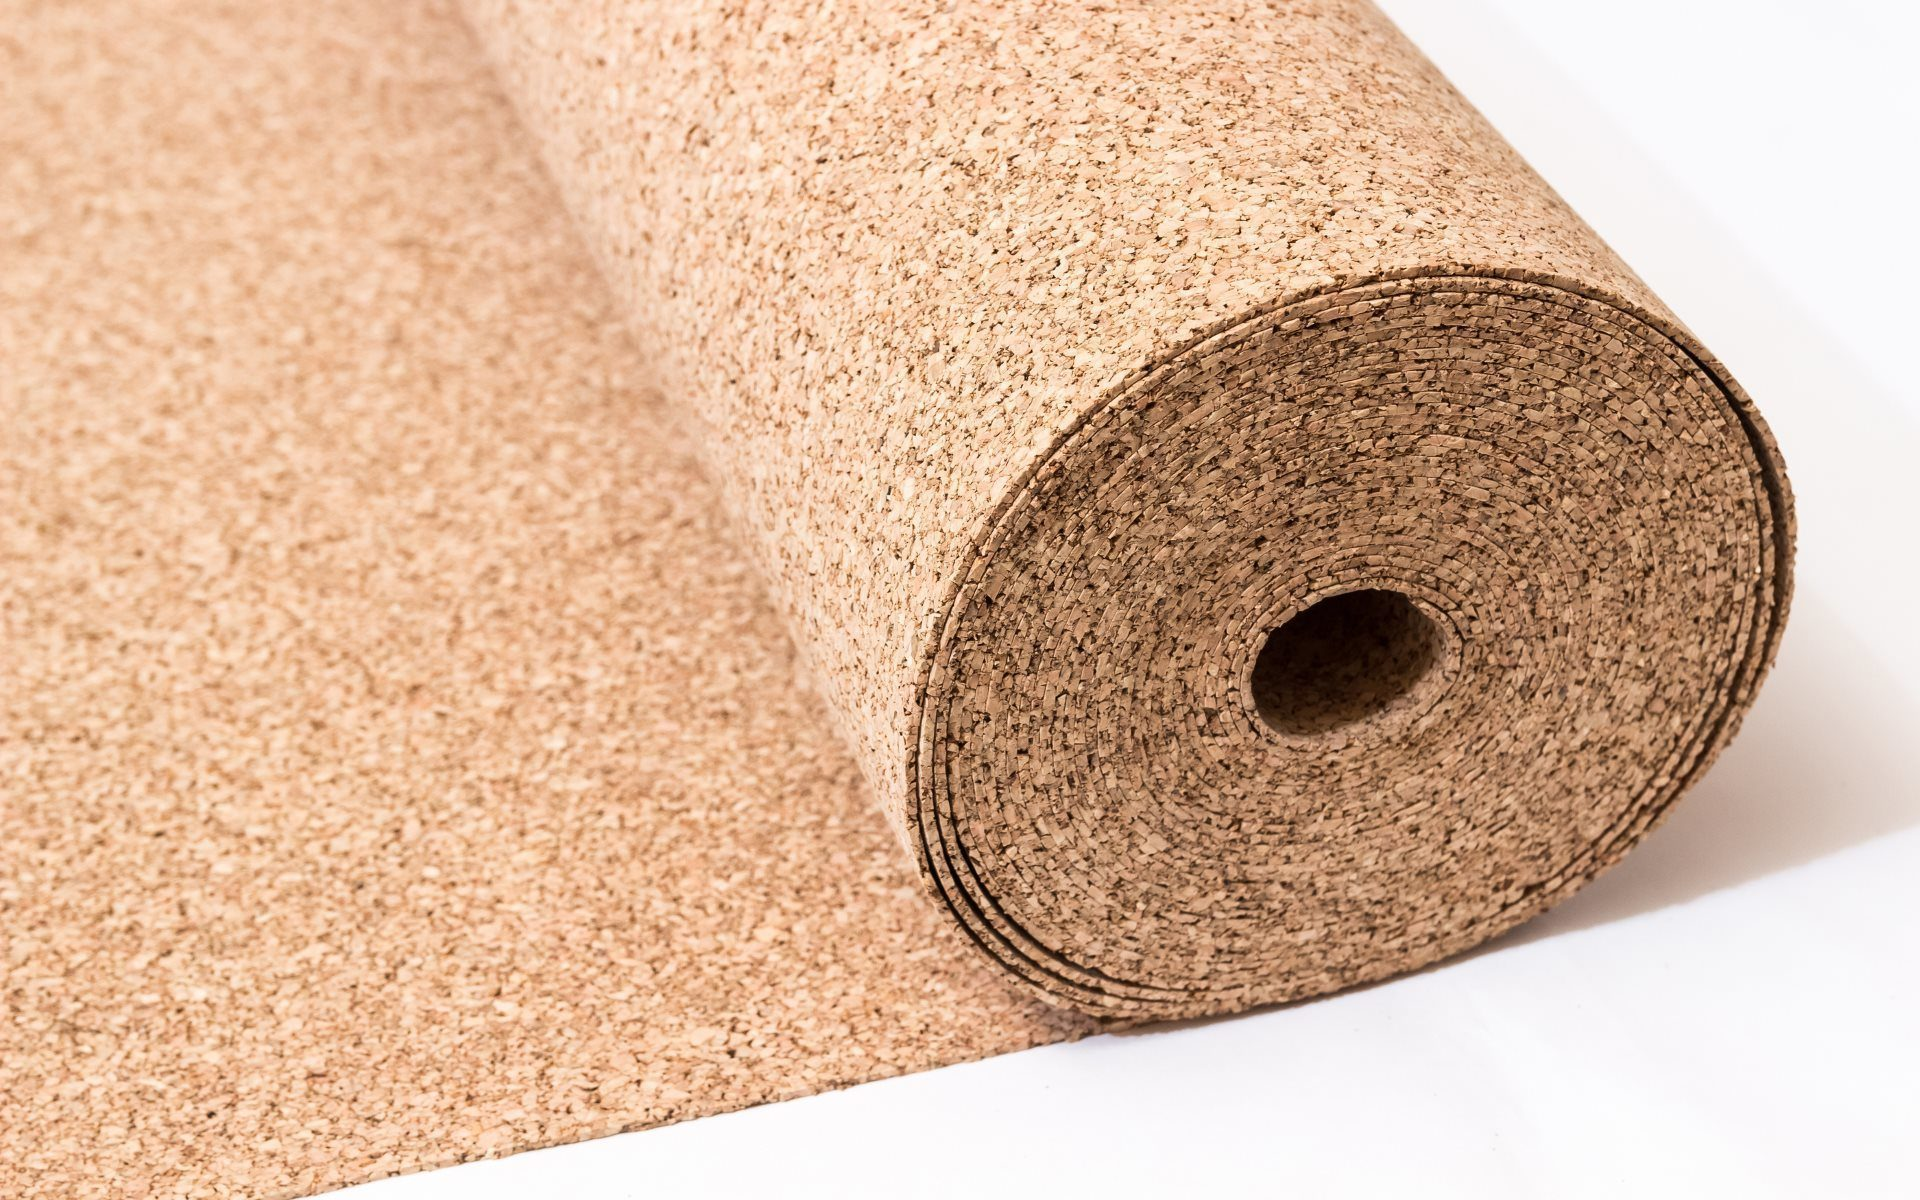 Industrial Cork Material Products Are More Suitable and Effective